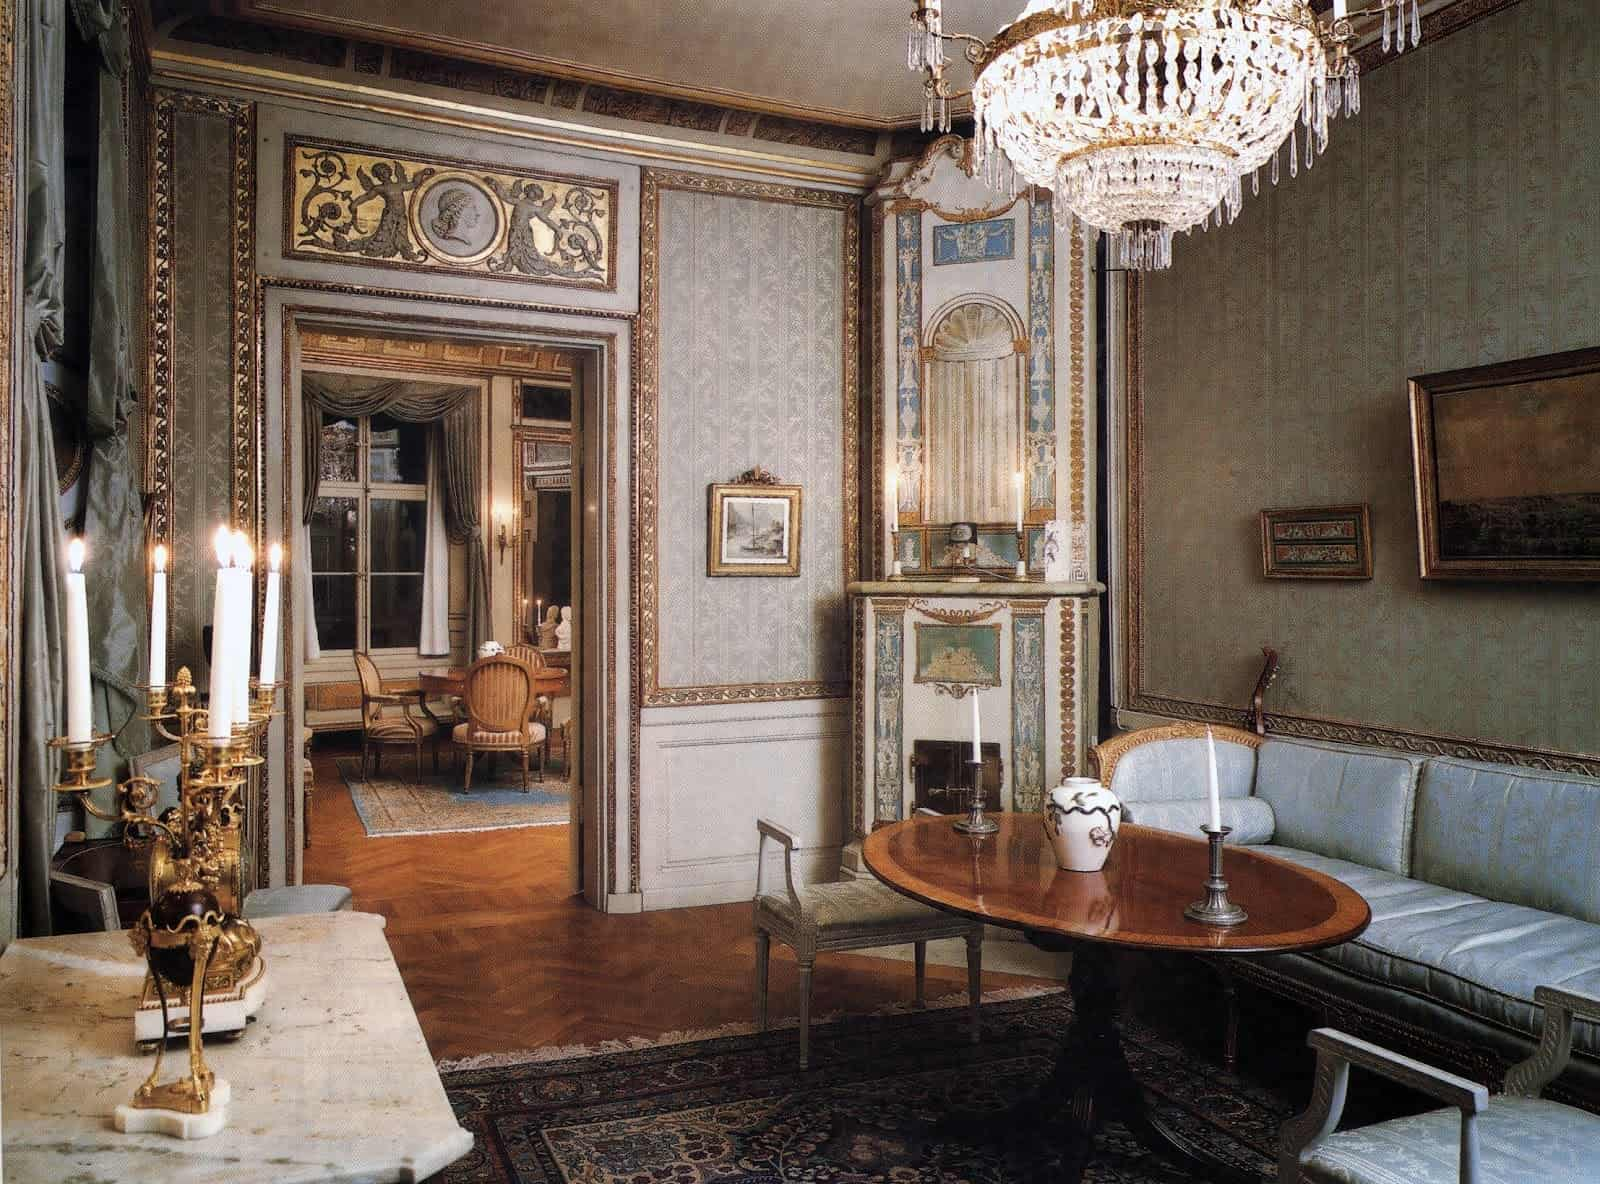 Gustavian - The Masreliez House, Stockholm